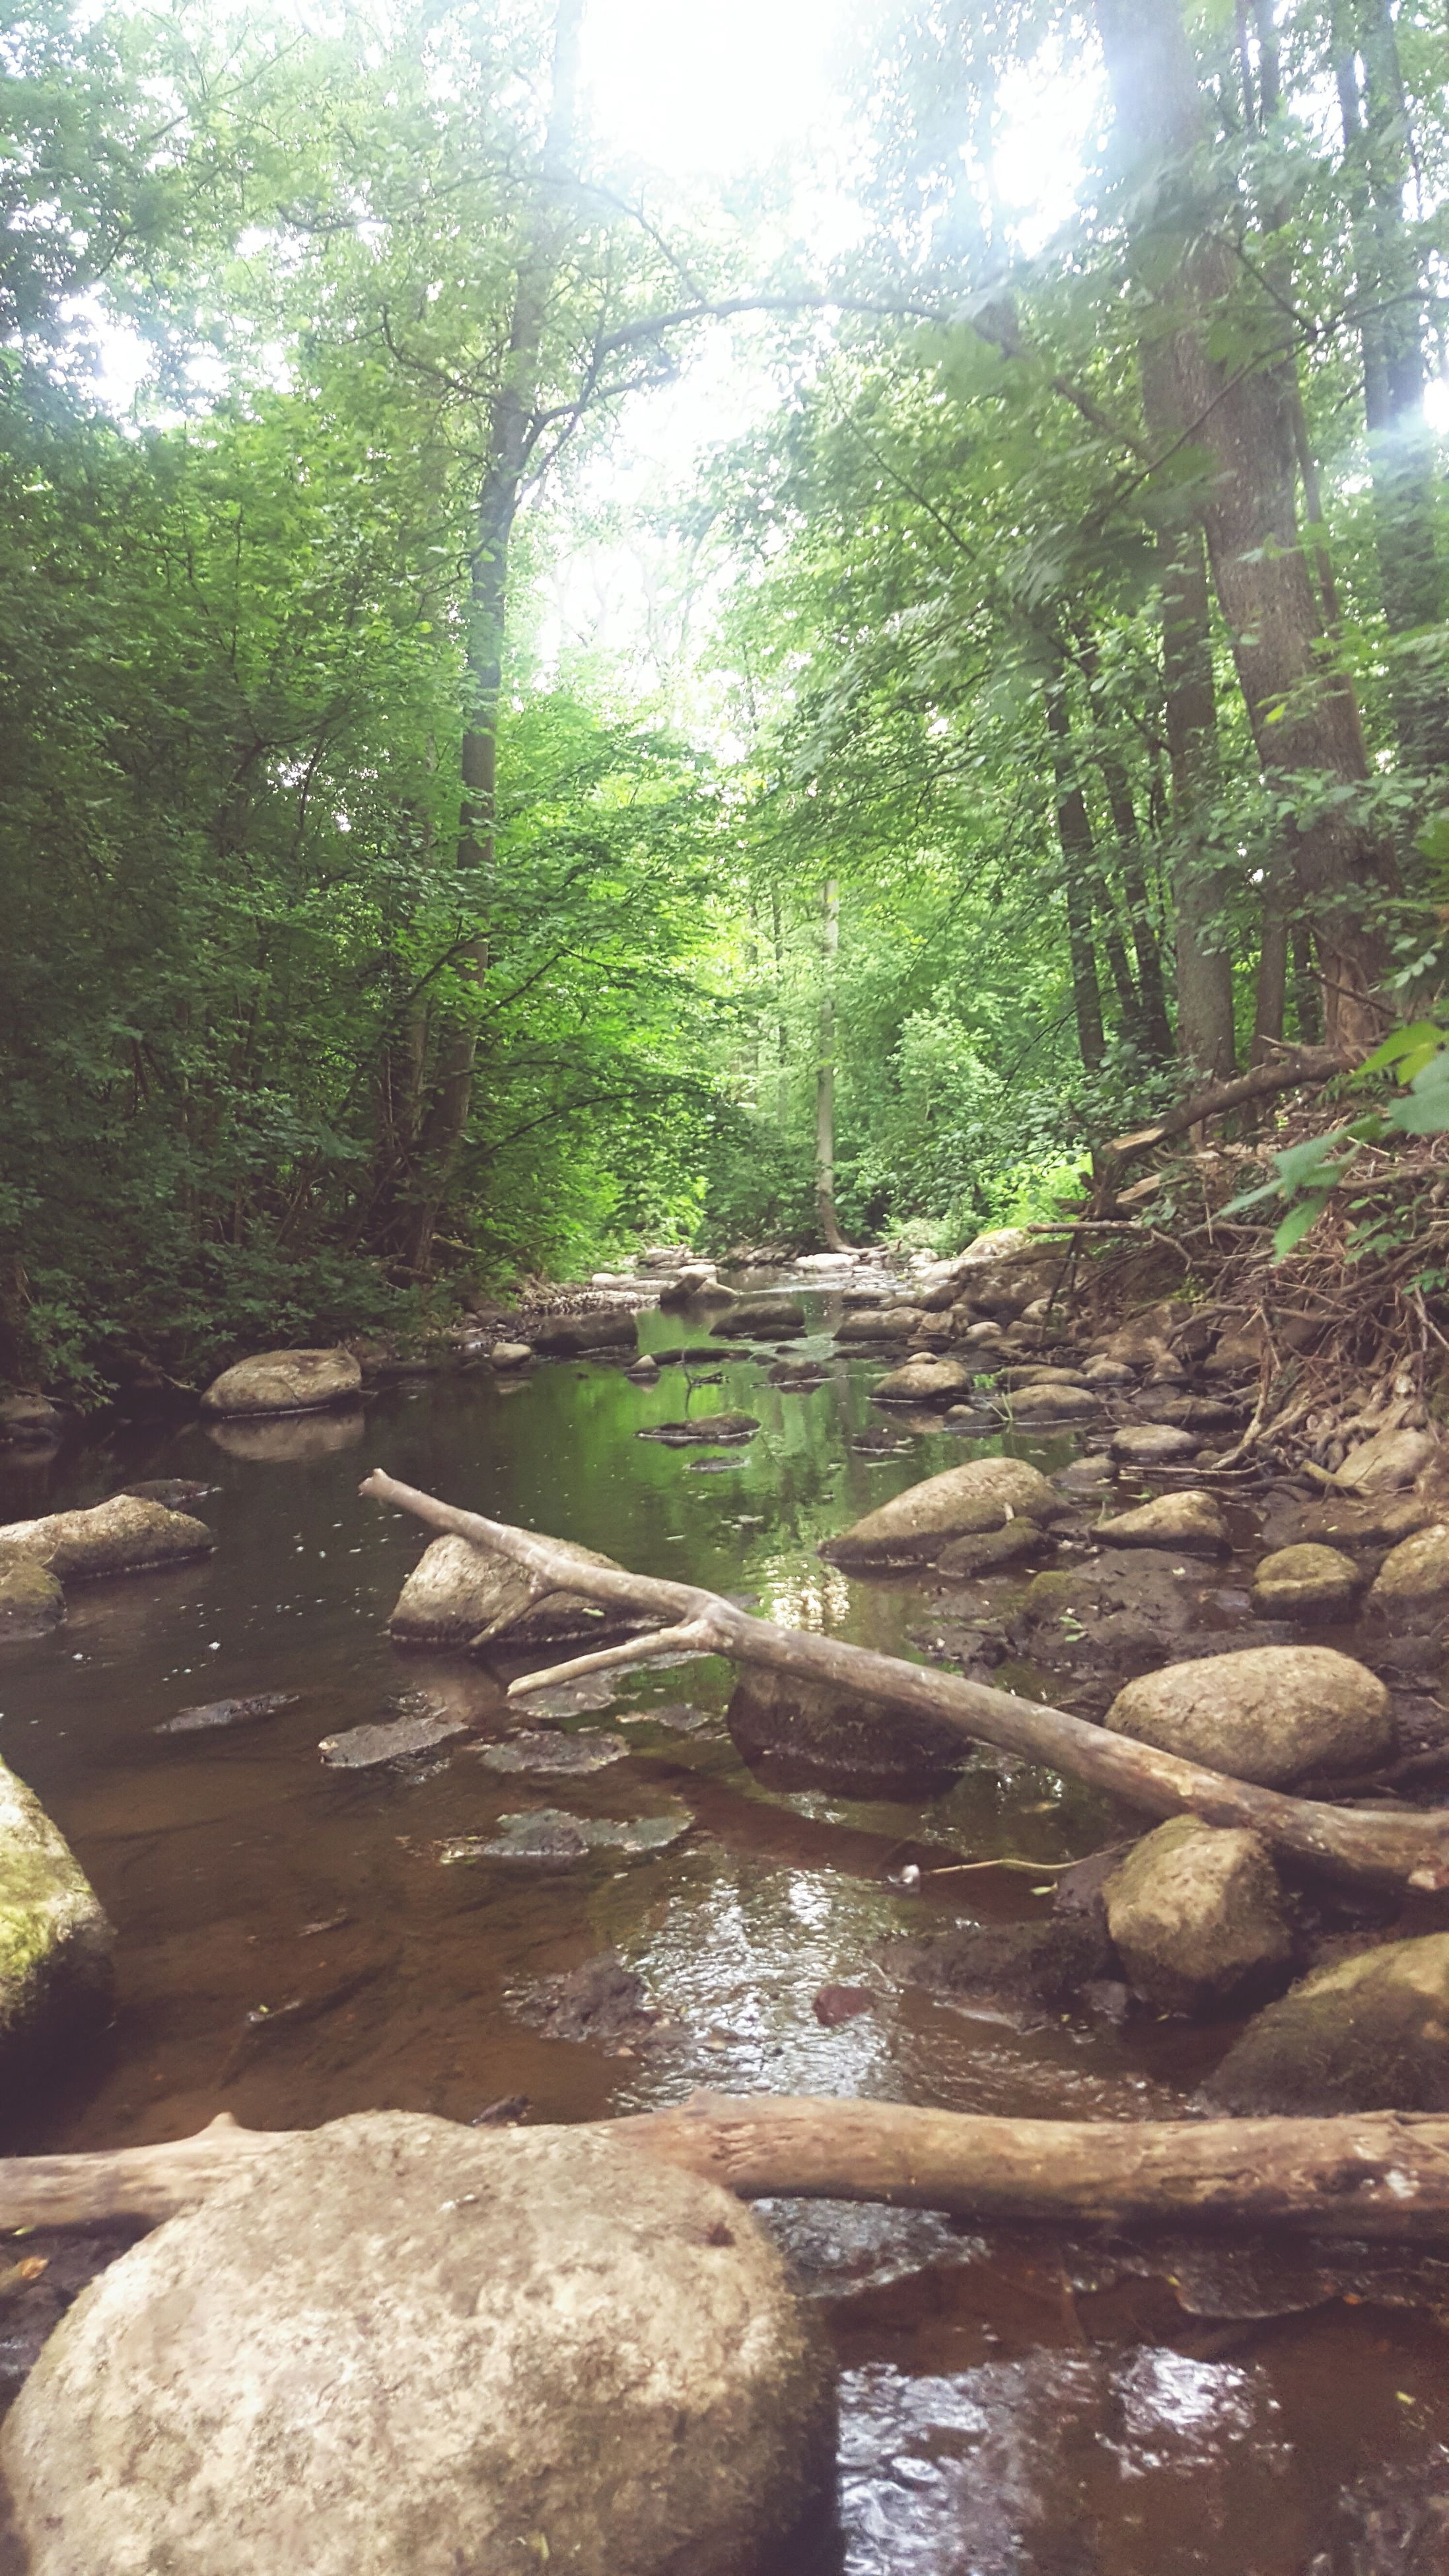 tree, tranquility, water, forest, tranquil scene, nature, scenics, beauty in nature, growth, tree trunk, stream, river, non-urban scene, sunlight, idyllic, woodland, day, green color, outdoors, rock - object